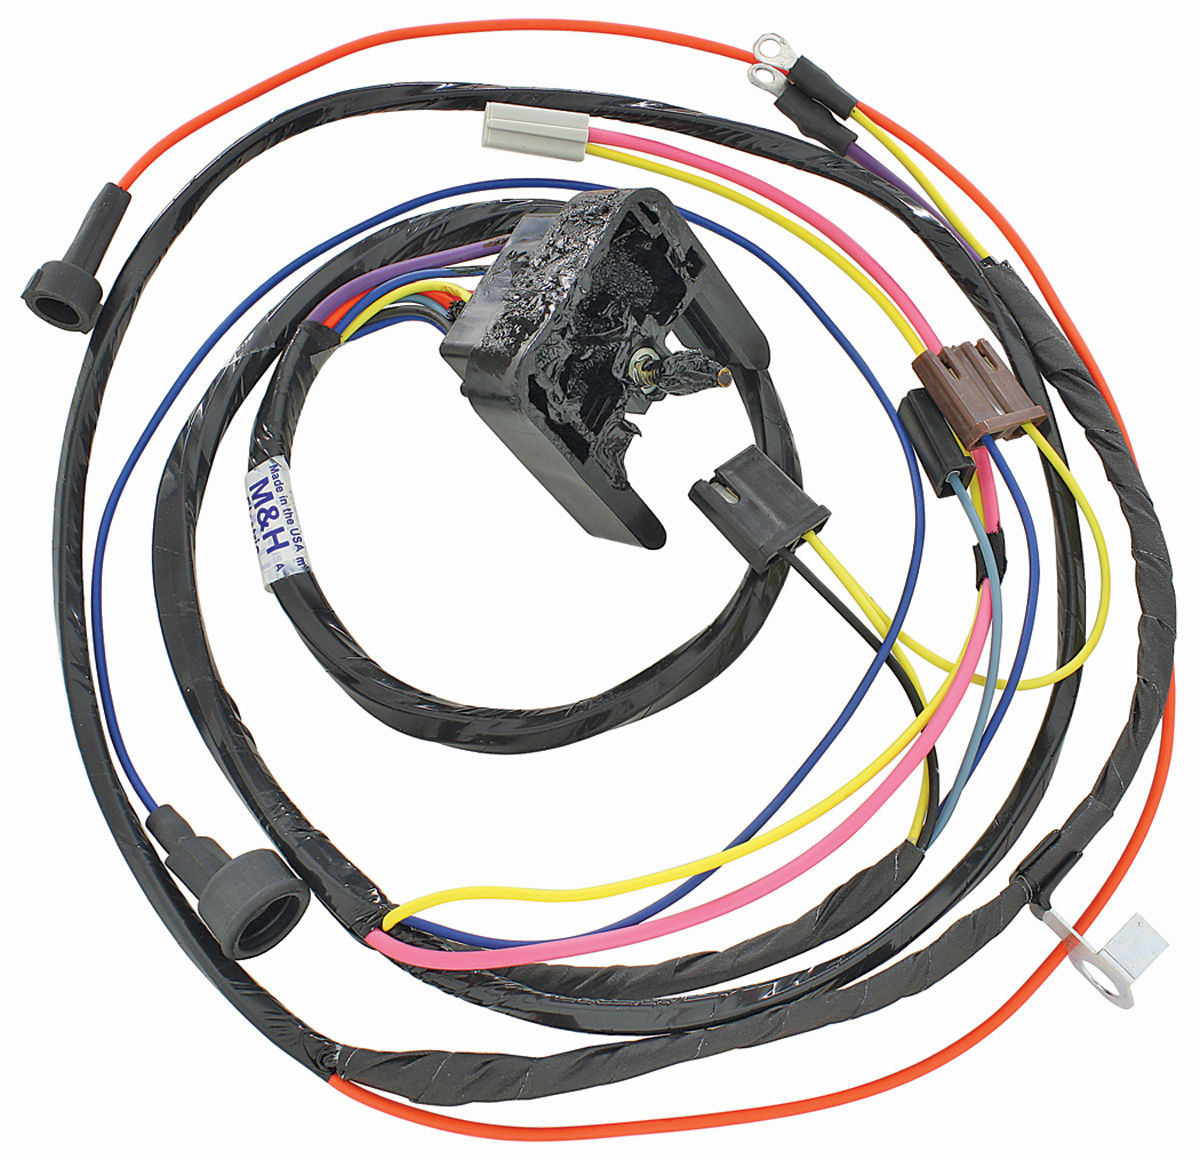 38947 lrg?v=102520130818 m&h 1968 69 chevelle engine harness 396 hei w warning lights 1970 chevelle engine wiring harness at n-0.co